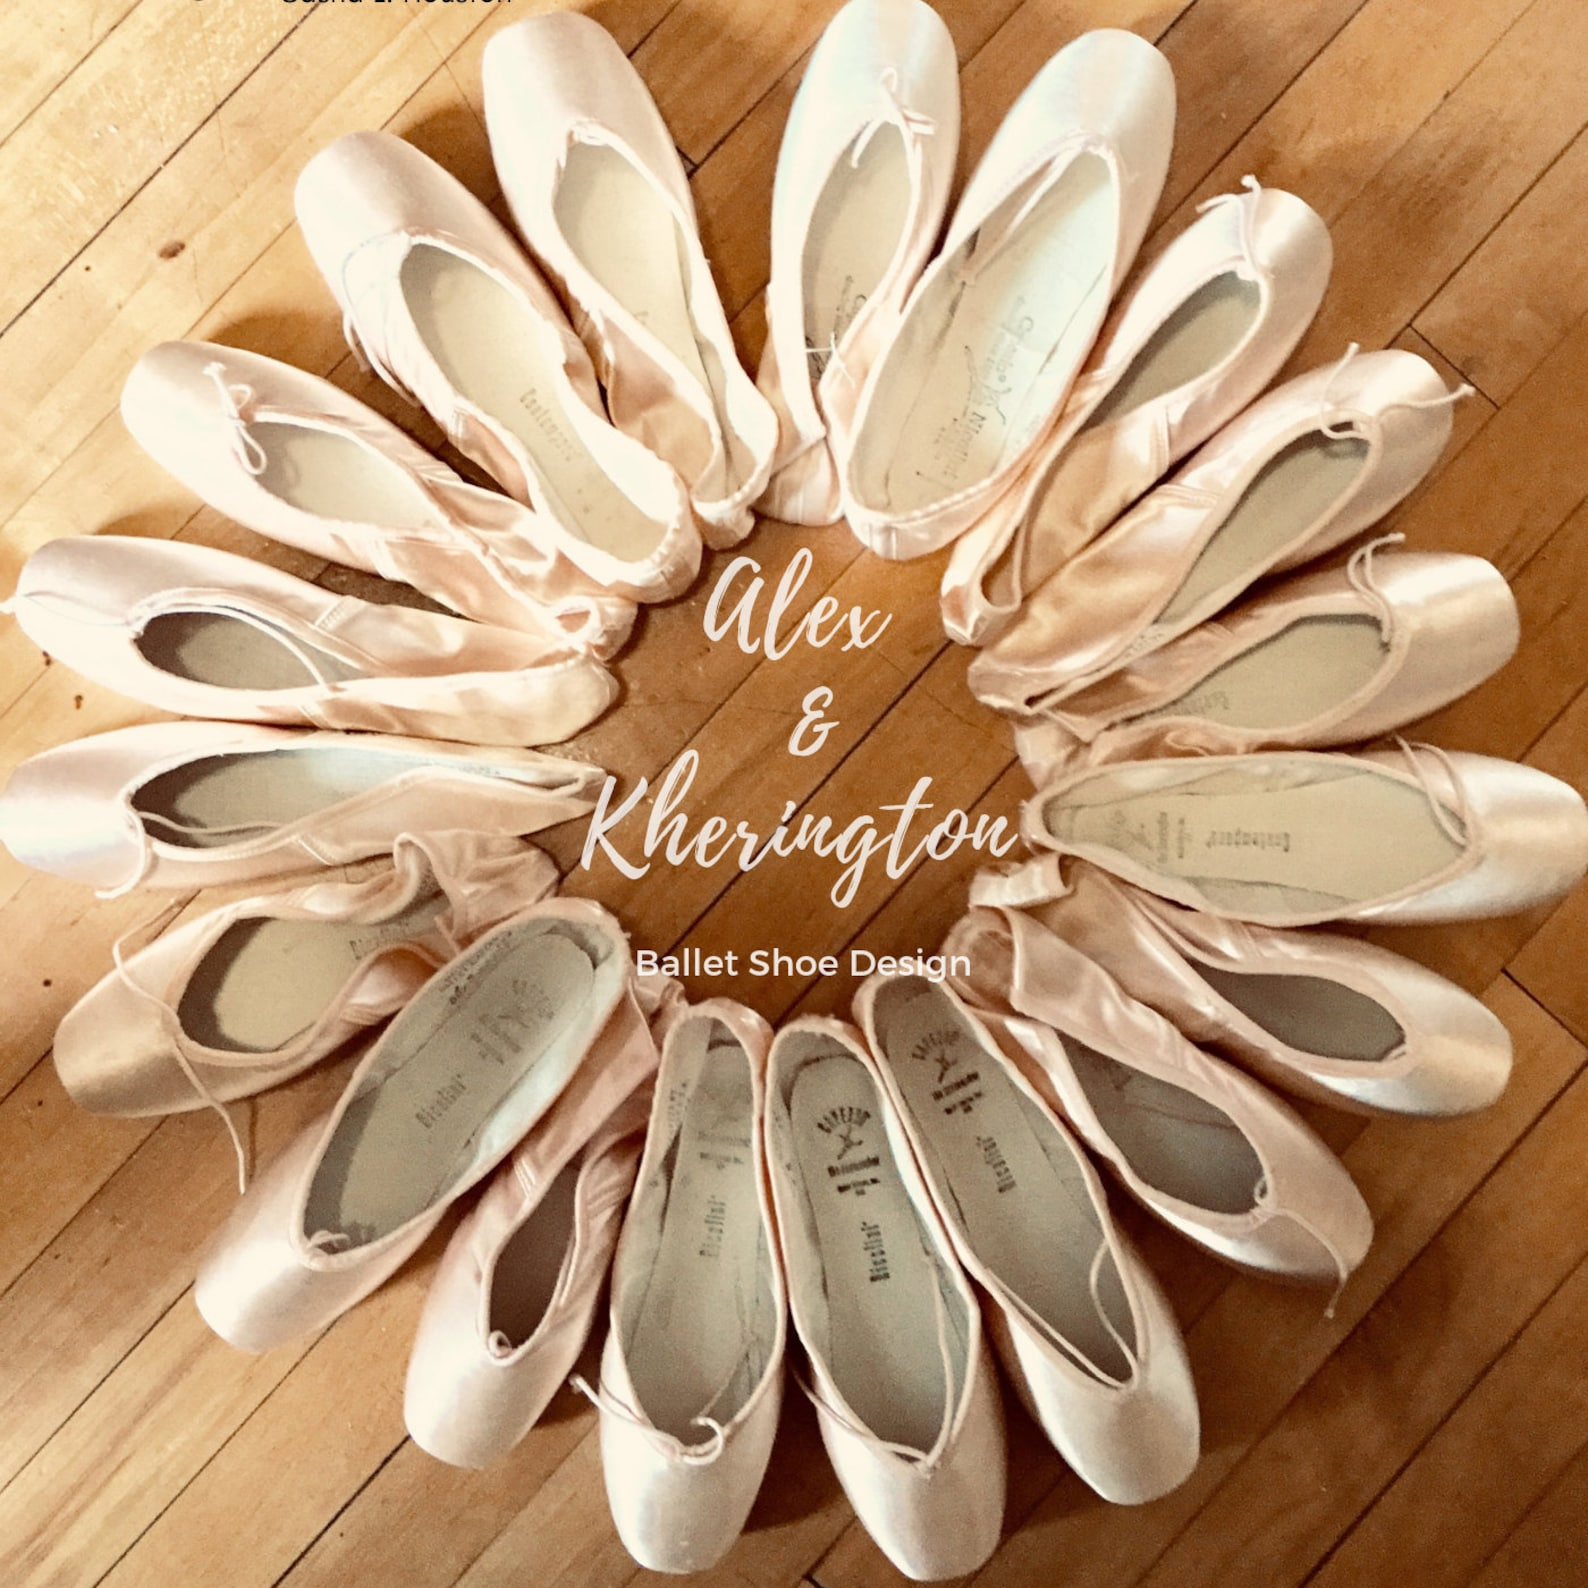 create your pointe shoes here at alex & kherington ballet shoe design - ribbons included